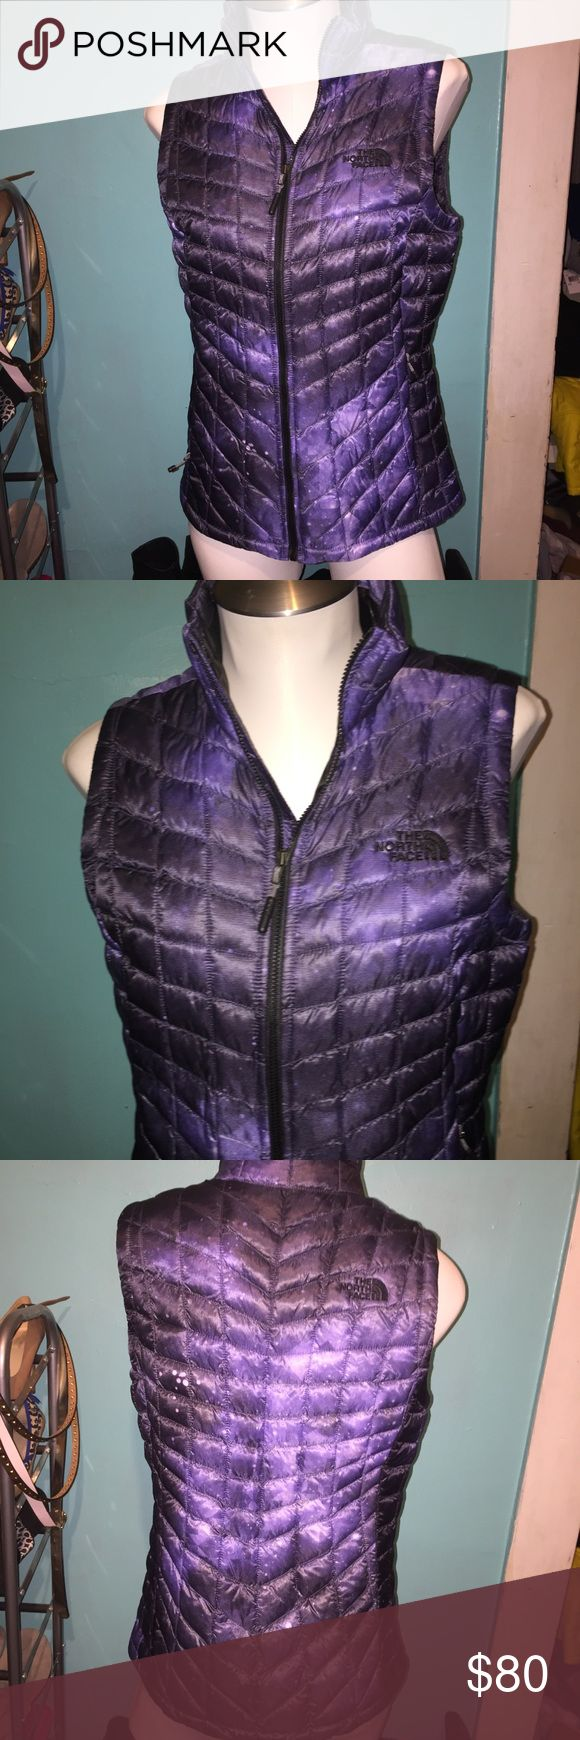 North Face thermoball vest Purple in color with kinda space pattern. Size small. Light weight but very warm. North Face Jackets & Coats Vests